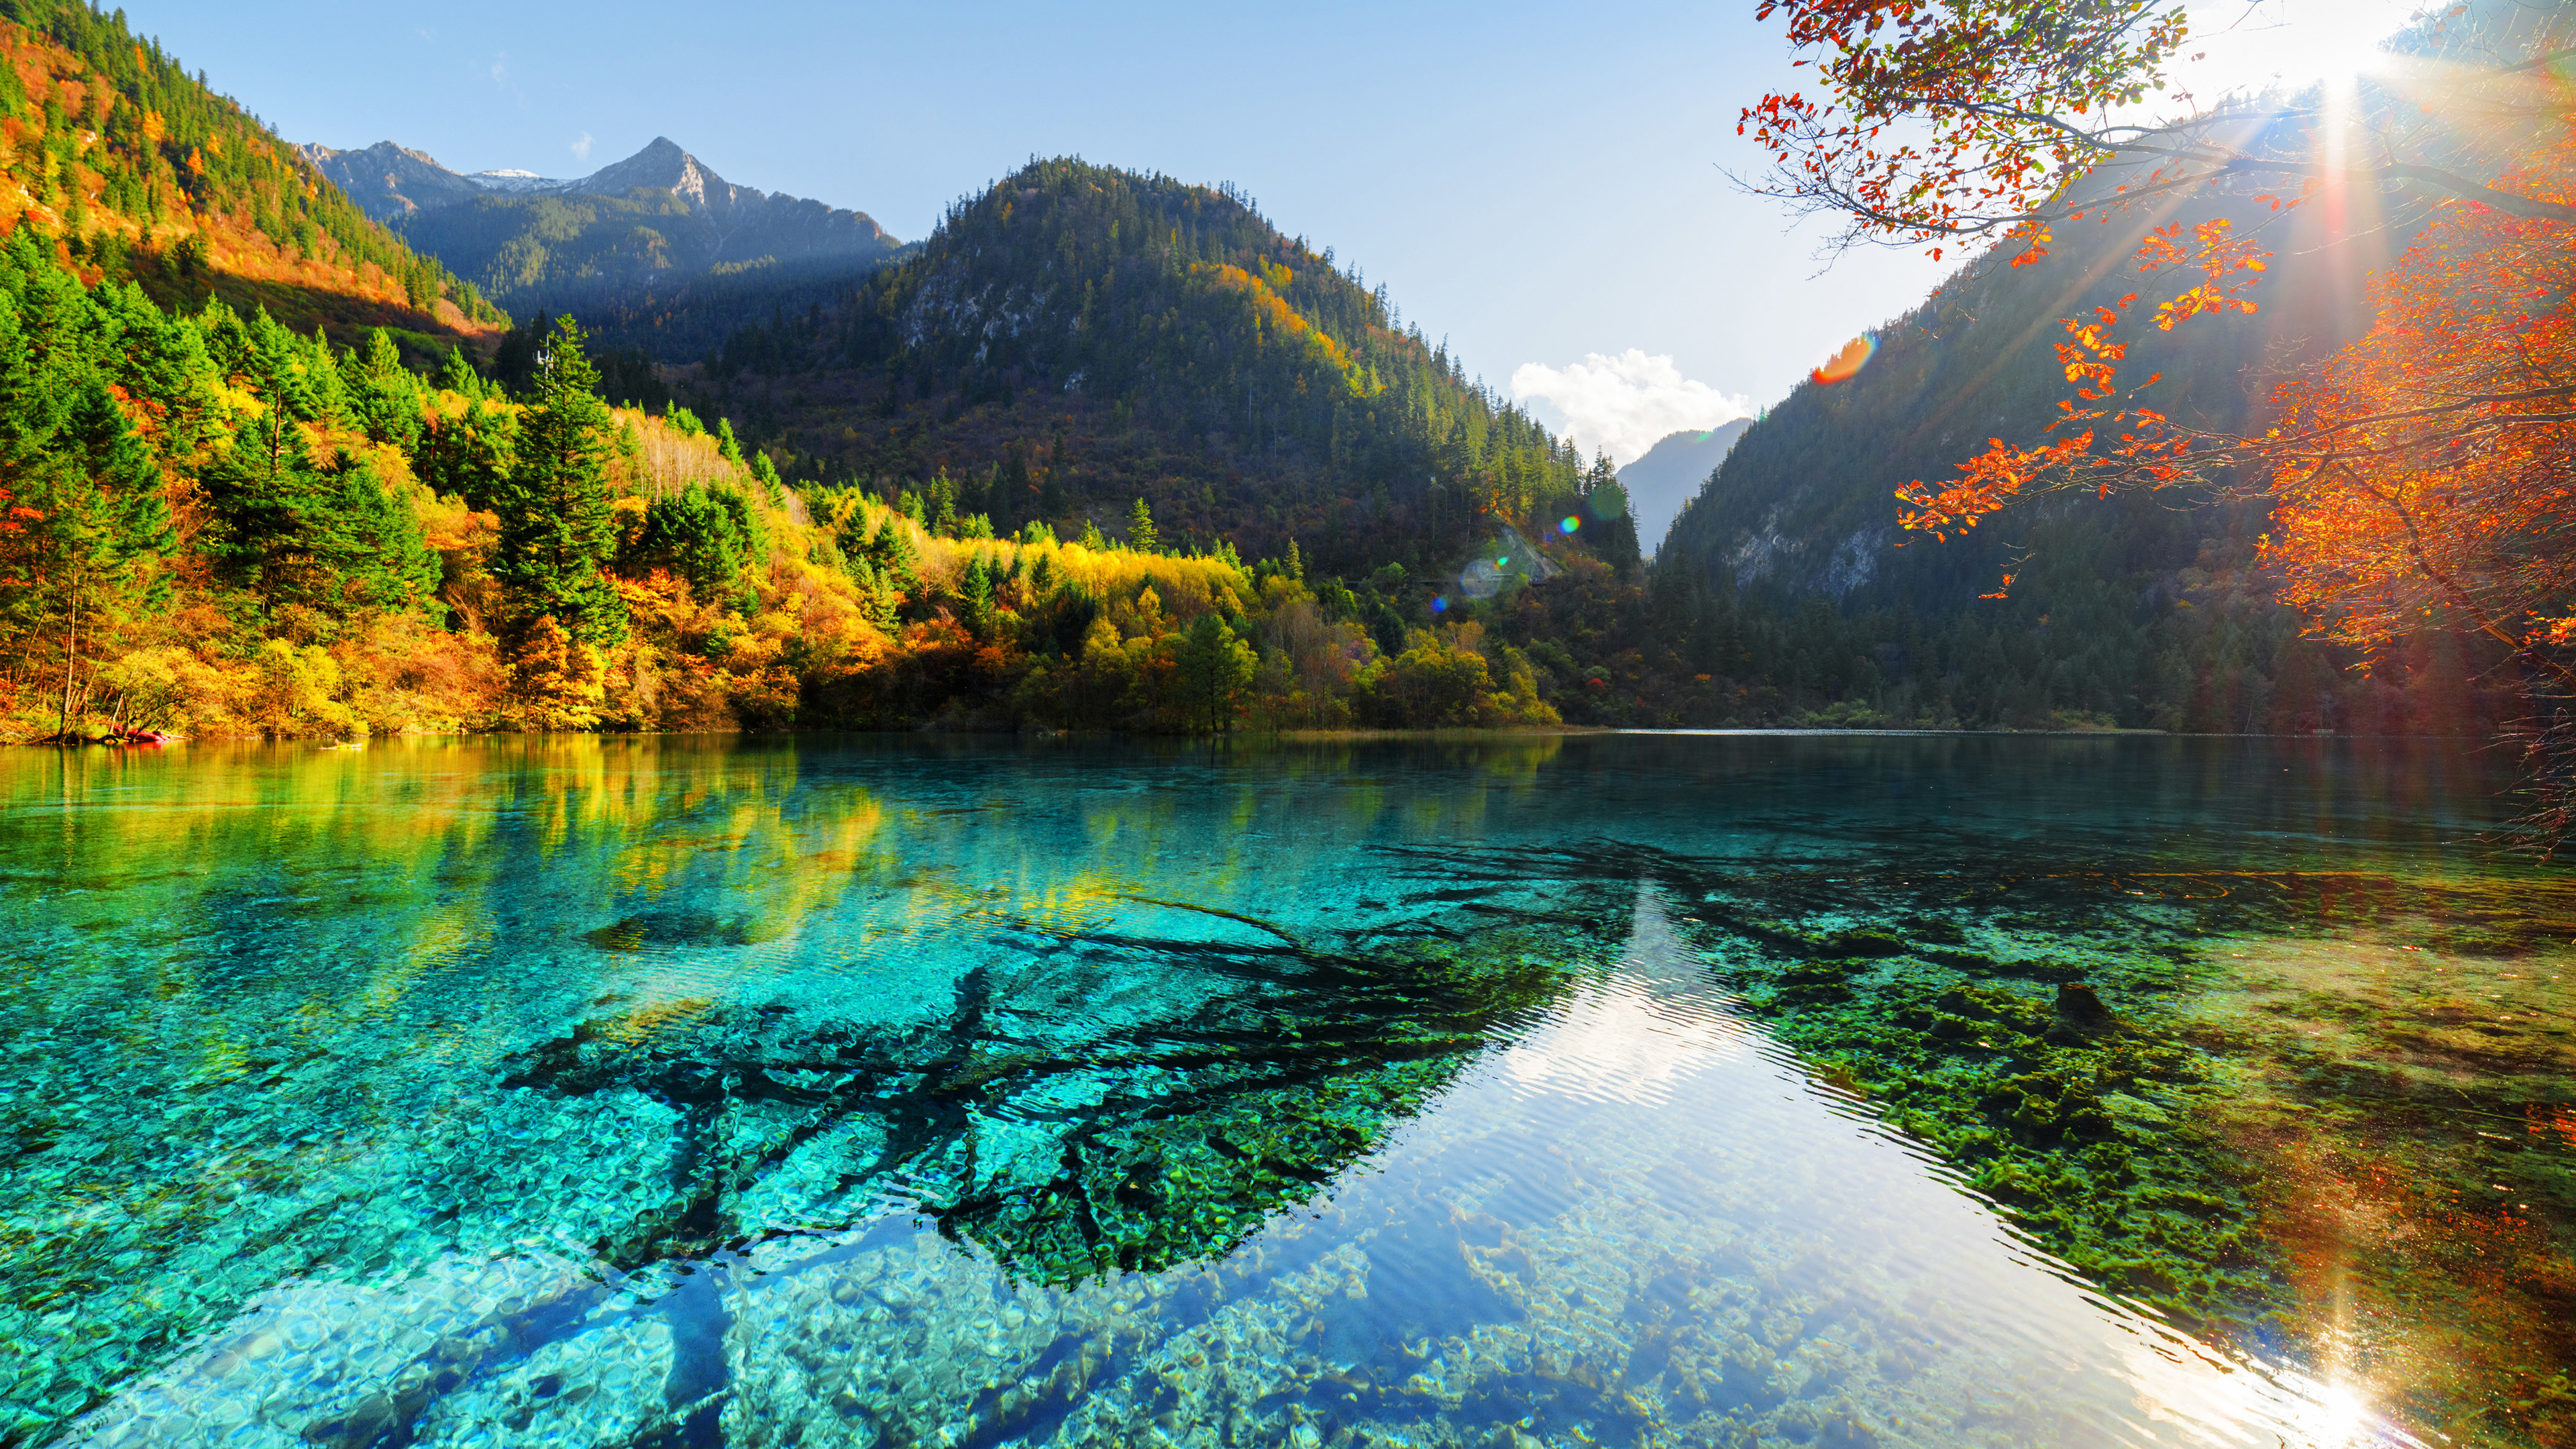 1366 x 768 resolution wallpaper,natural landscape,nature,reflection,water resources,mountain